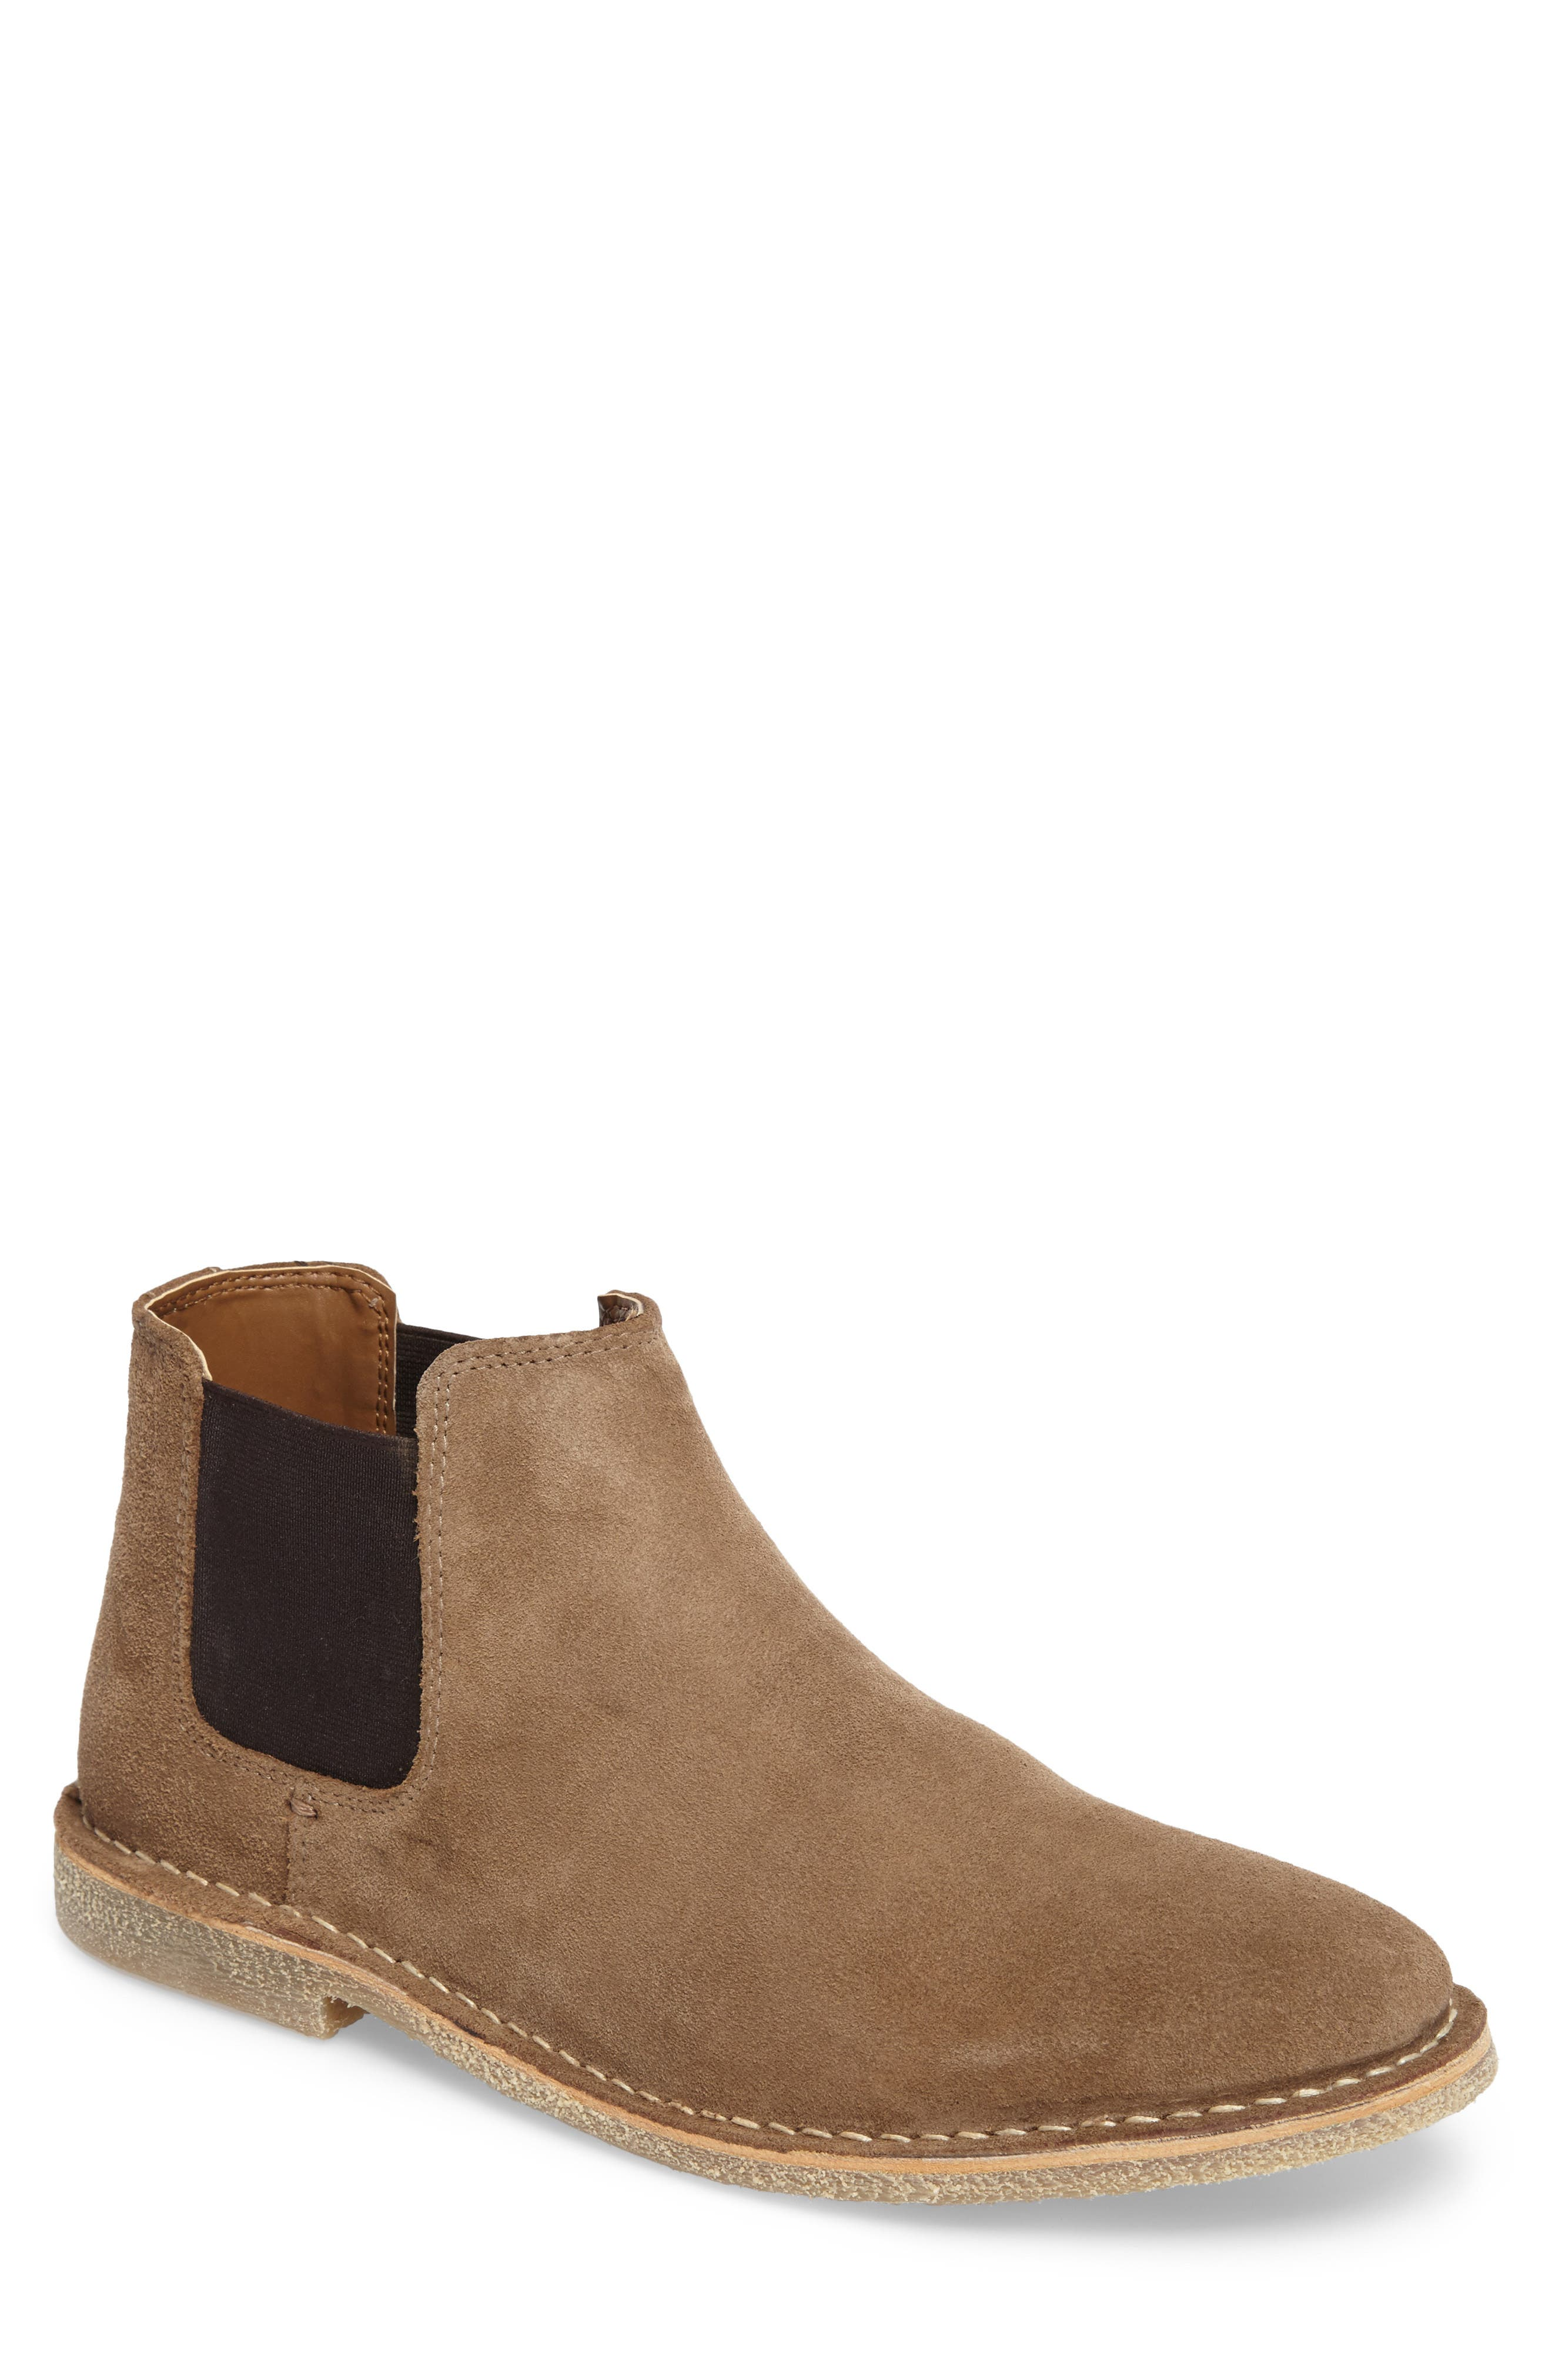 Alternate Image 1 Selected - Kenneth Cole Reaction Chelsea Boot (Men)